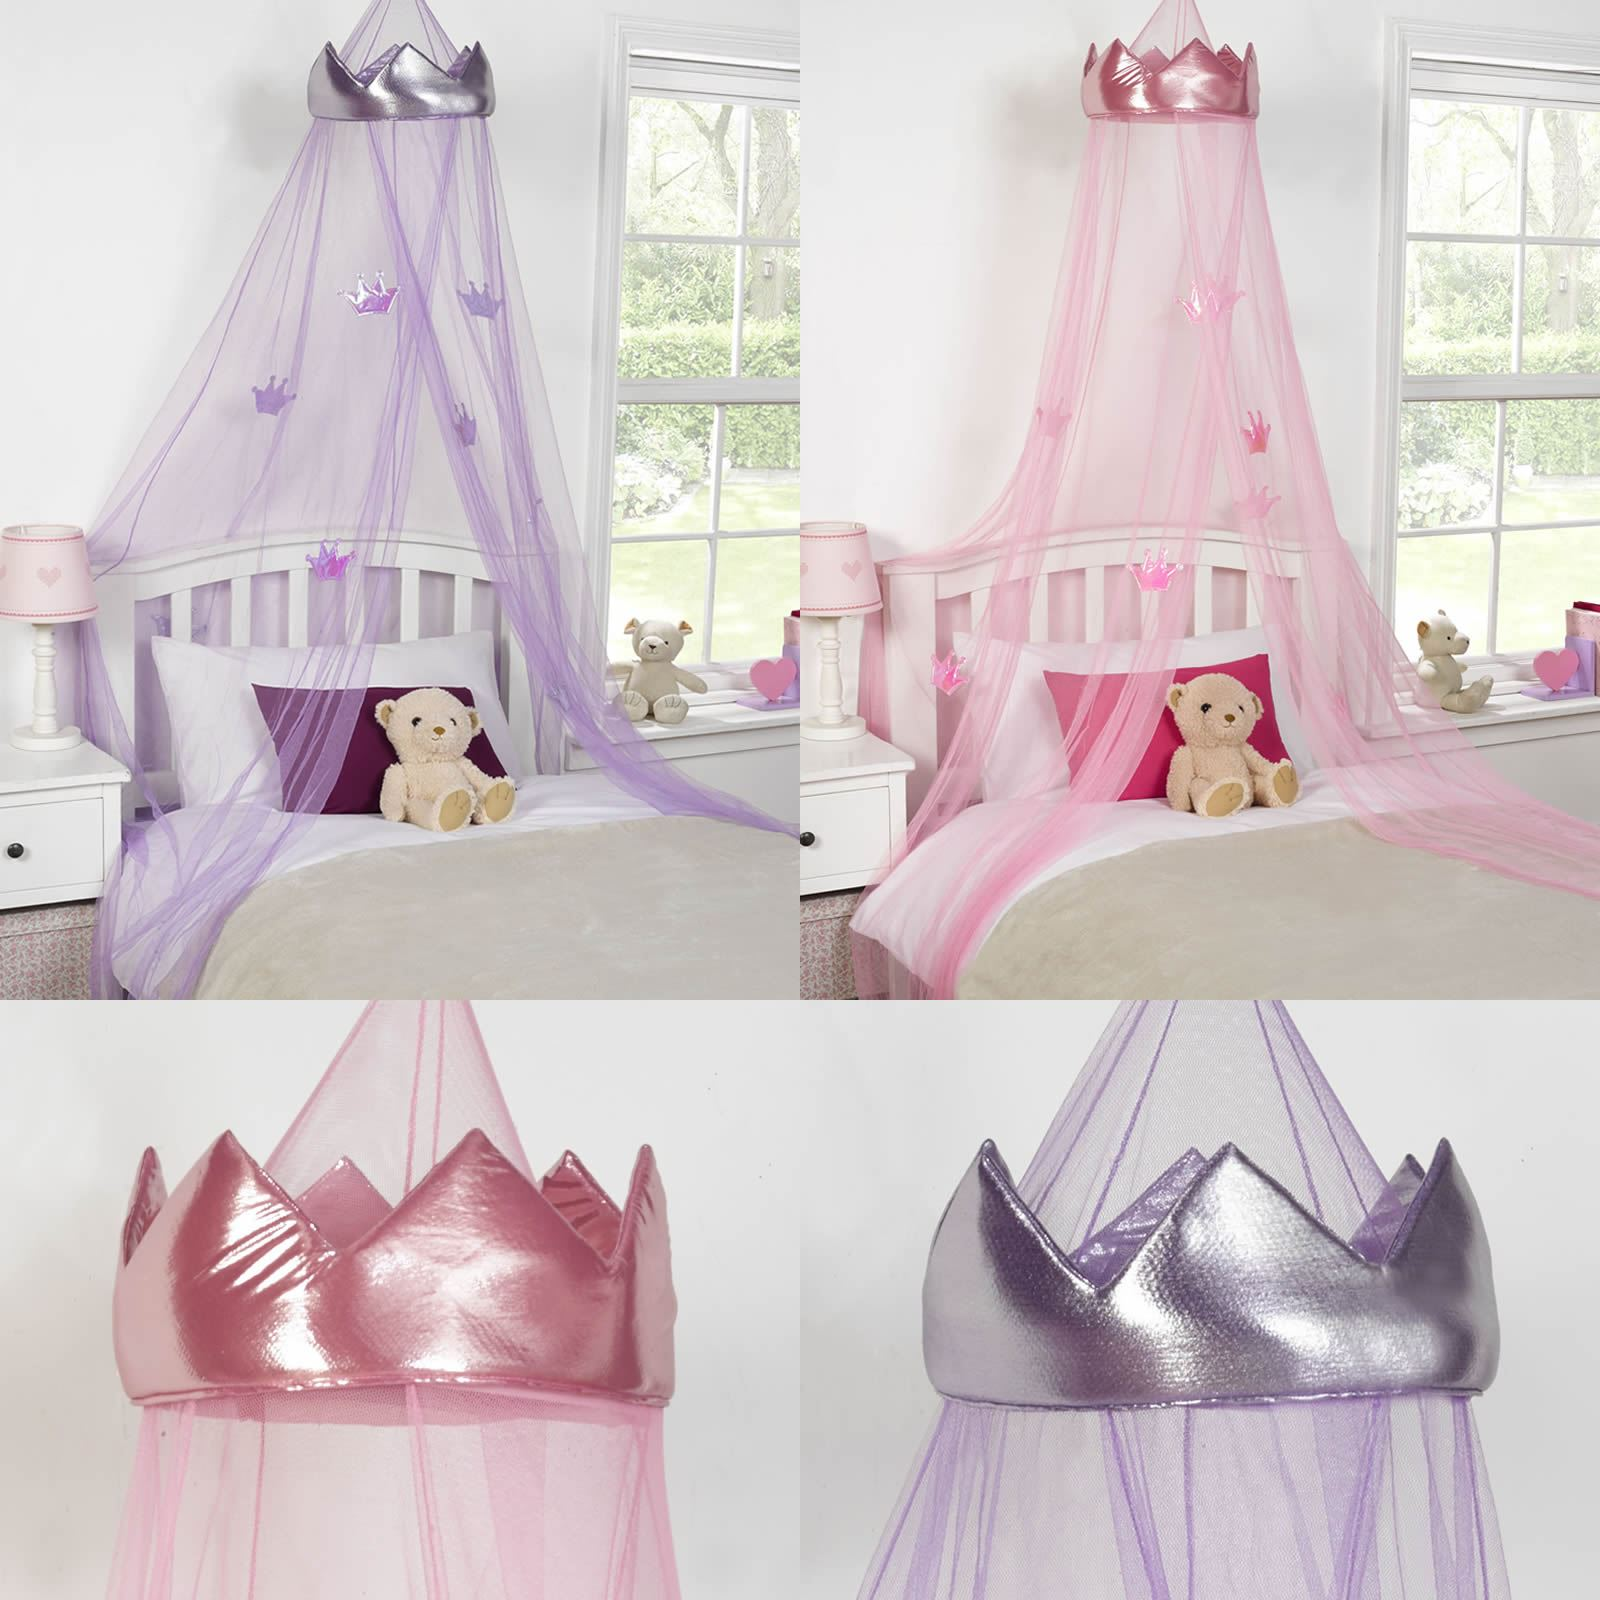 Princess Bed Canopy Girl Crown Pelmet Upholstered Awning: KIDS CHILDRENS GIRLS PRINCESS CROWN BED CANOPY INSECT